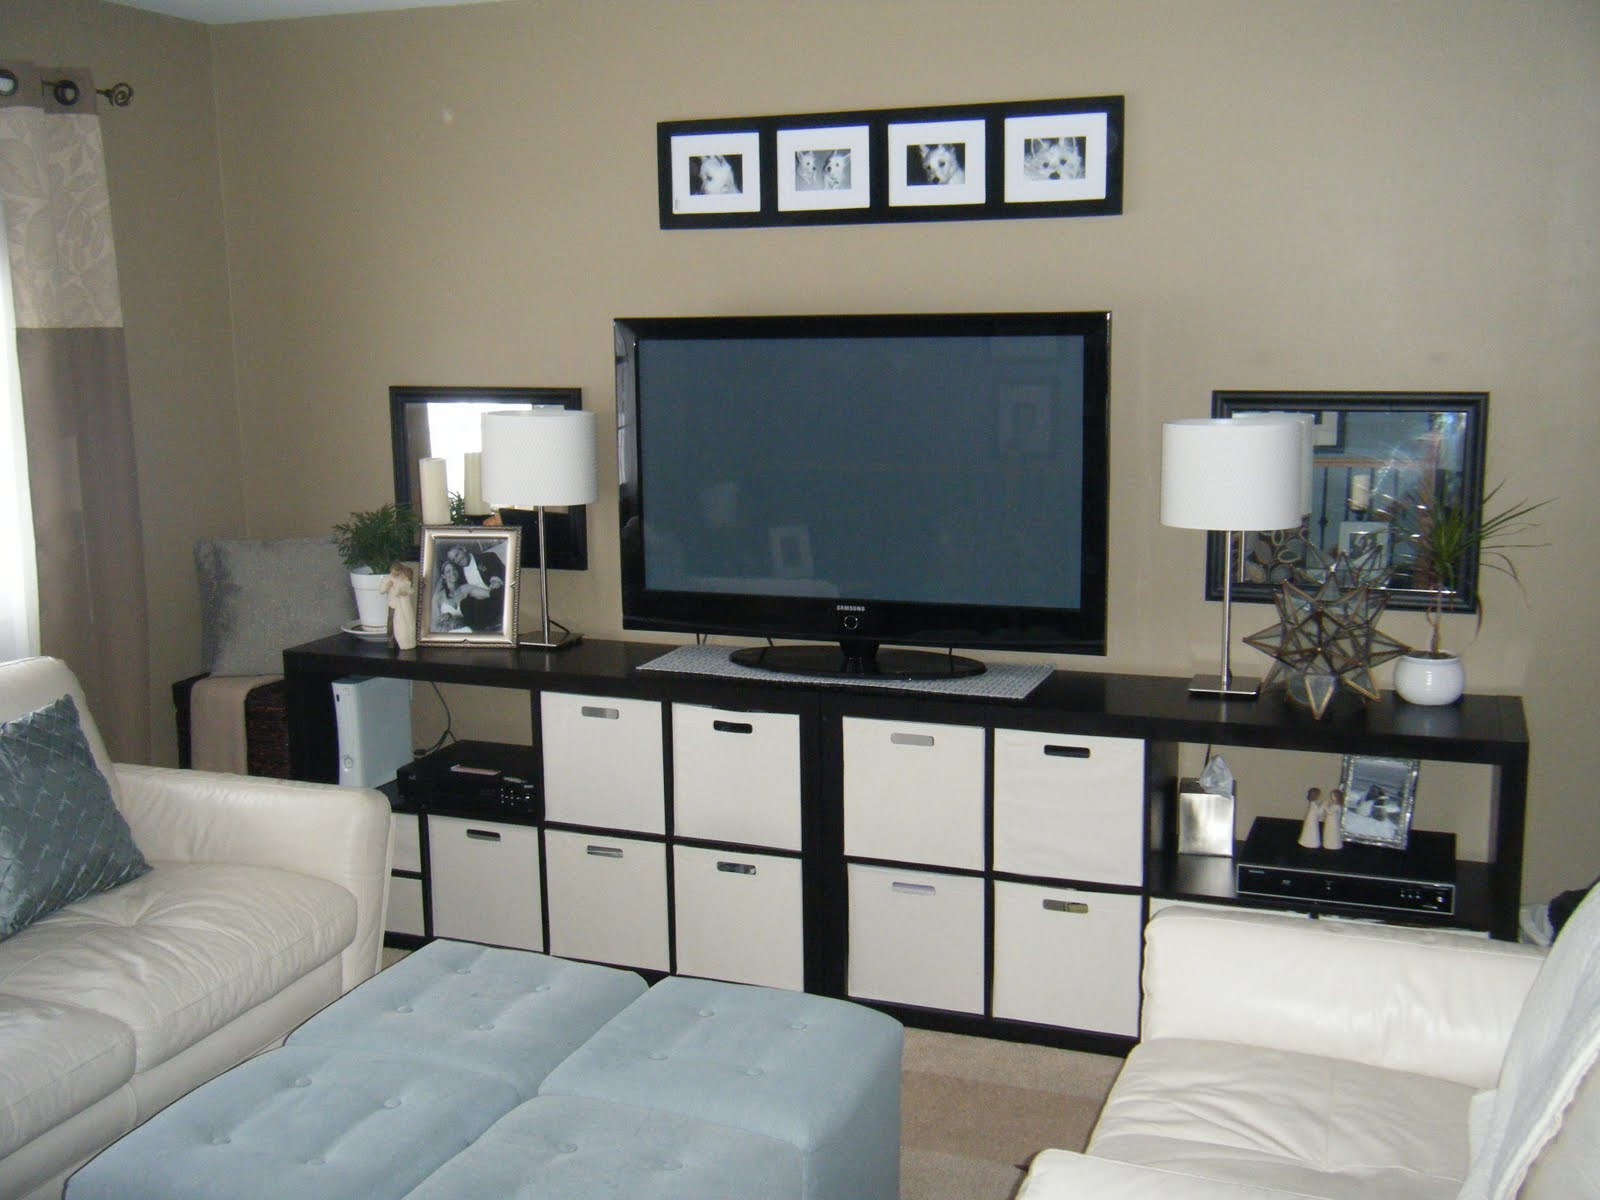 Entertainment Centers on Pinterest : Tv Stands, Ikea and Entertainment Center